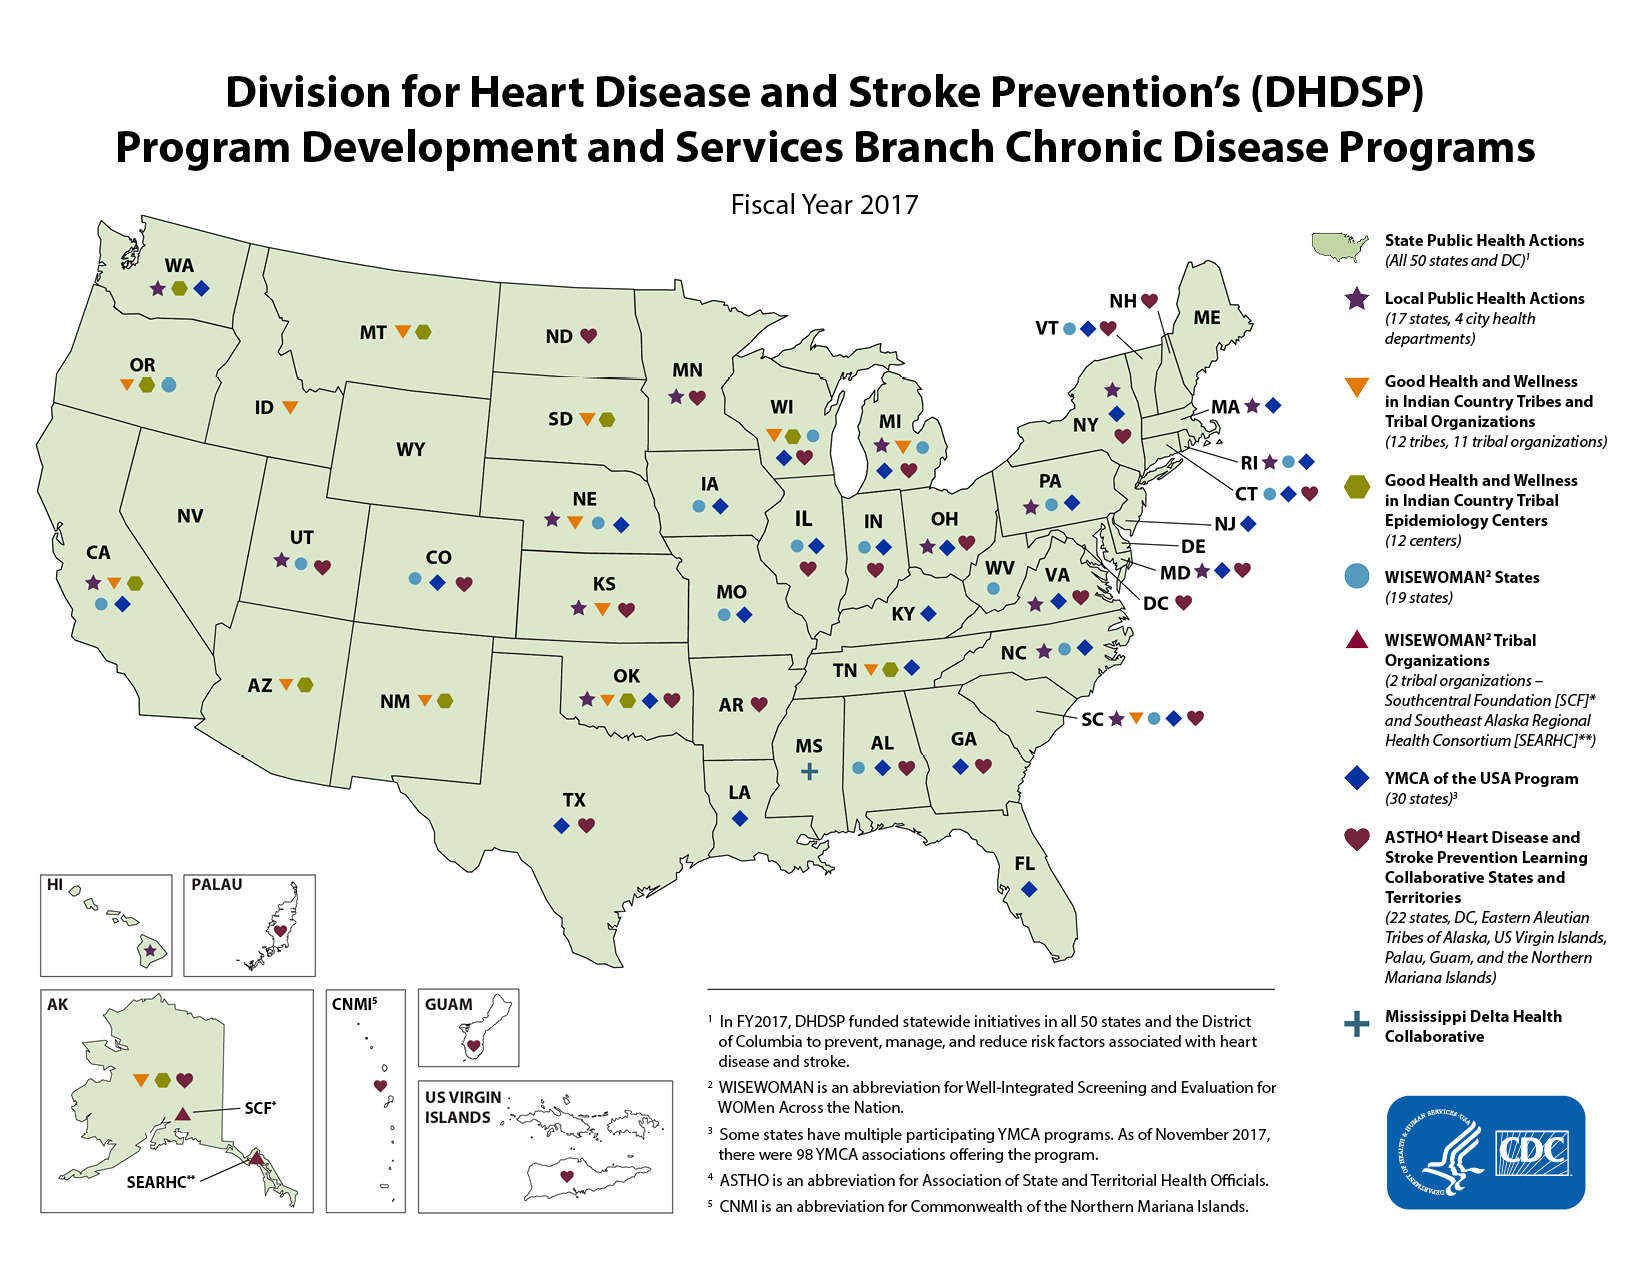 CDC State, Local, and Tribal Grantees Map|DHDSP|CDC